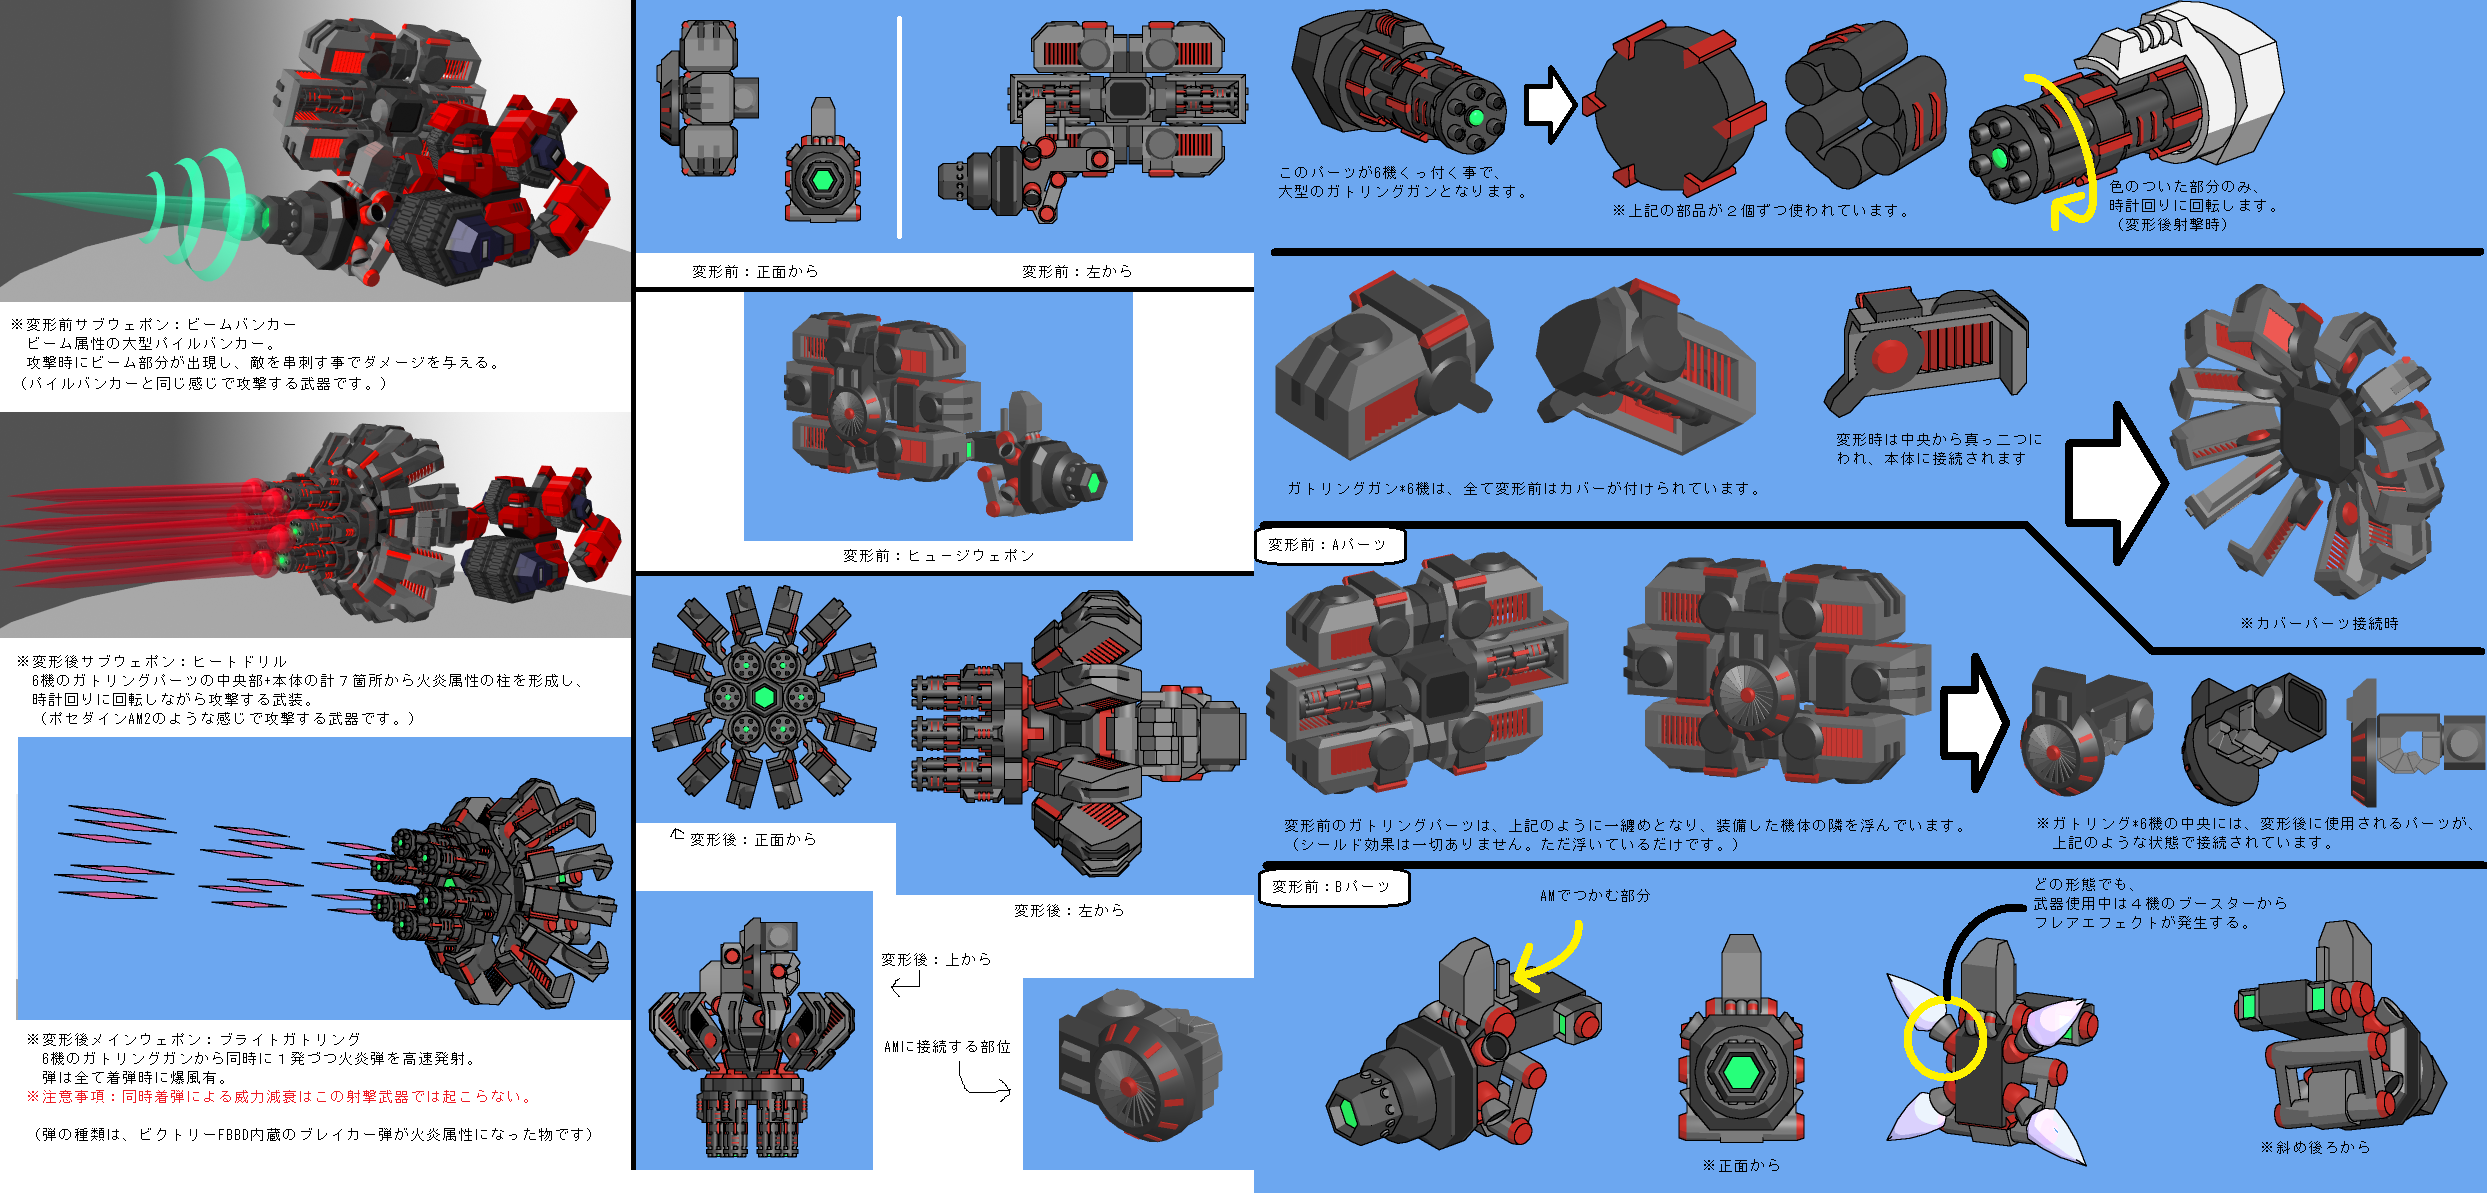 weapon and enemy design contest results Img.php?filename=tc_1339692_2_1385044225